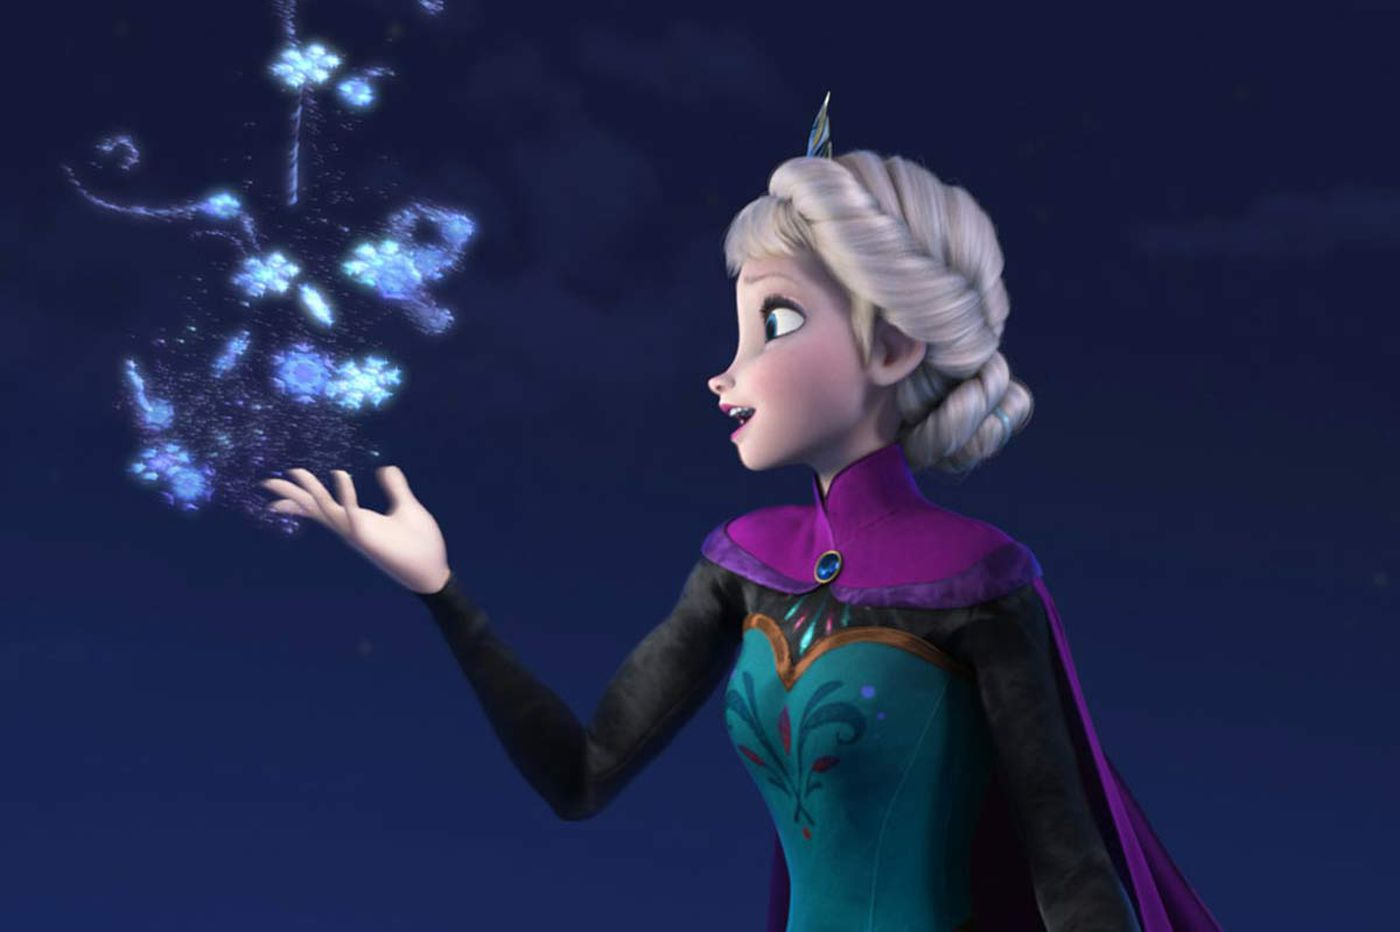 Twitter campaign wants Elsa from 'Frozen' to warm up to a woman